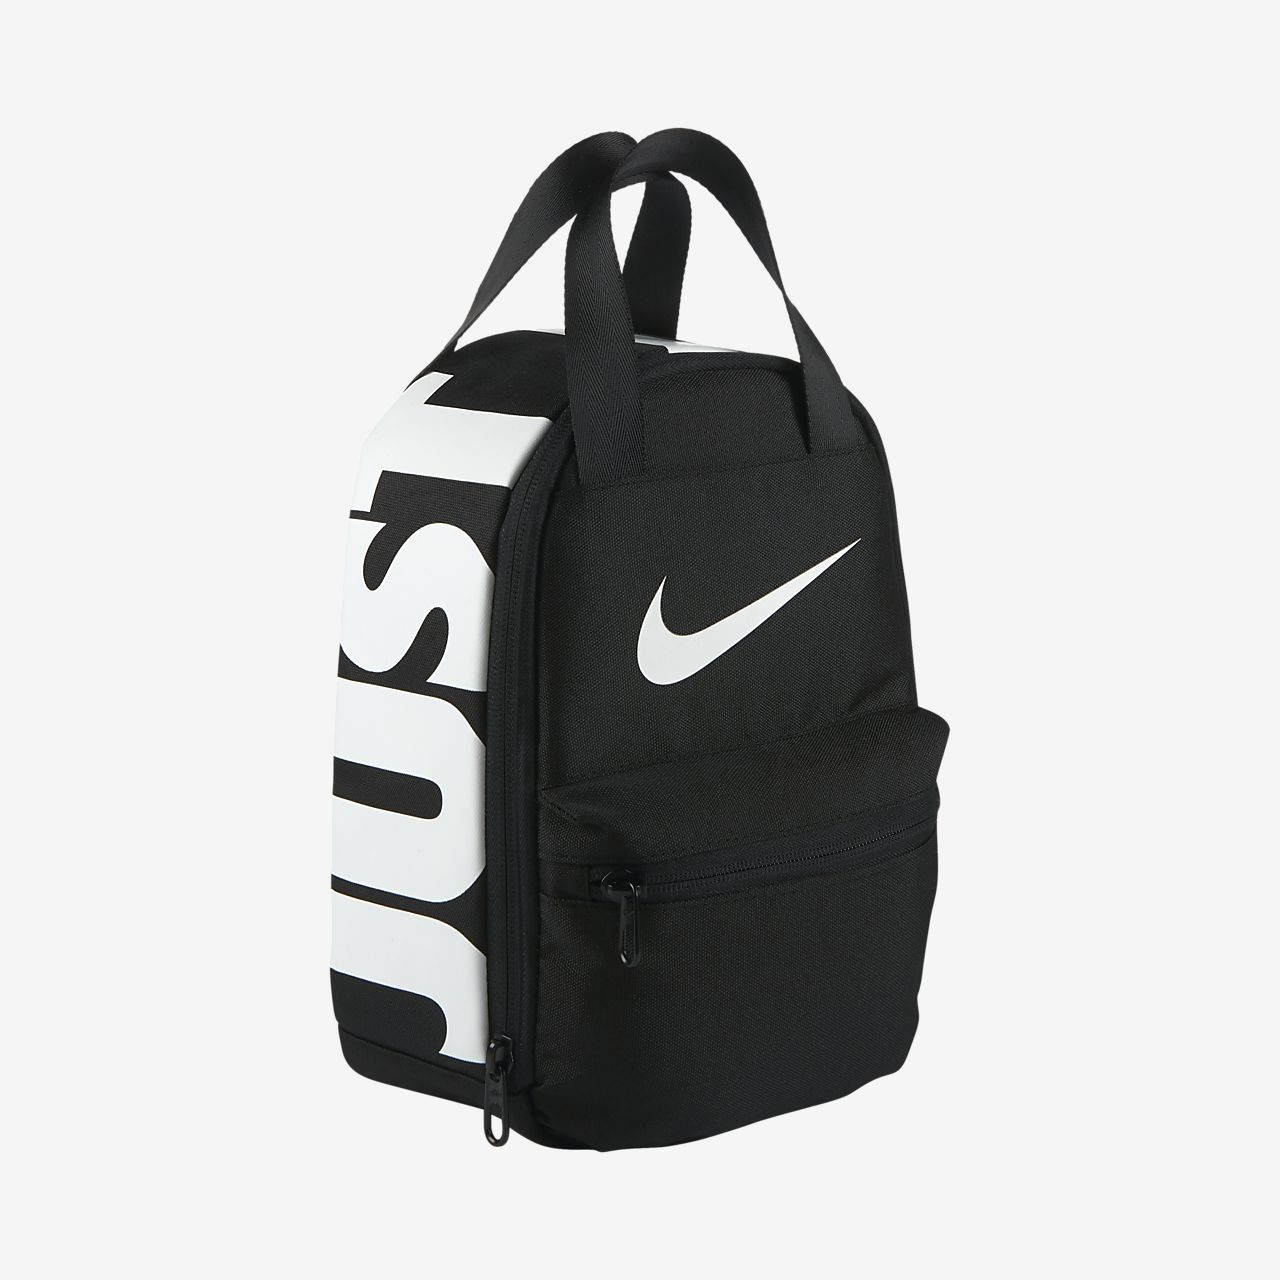 b06d2b5cbc Low Resolution Sac isotherme Nike Brasilia Sac isotherme Nike Brasilia